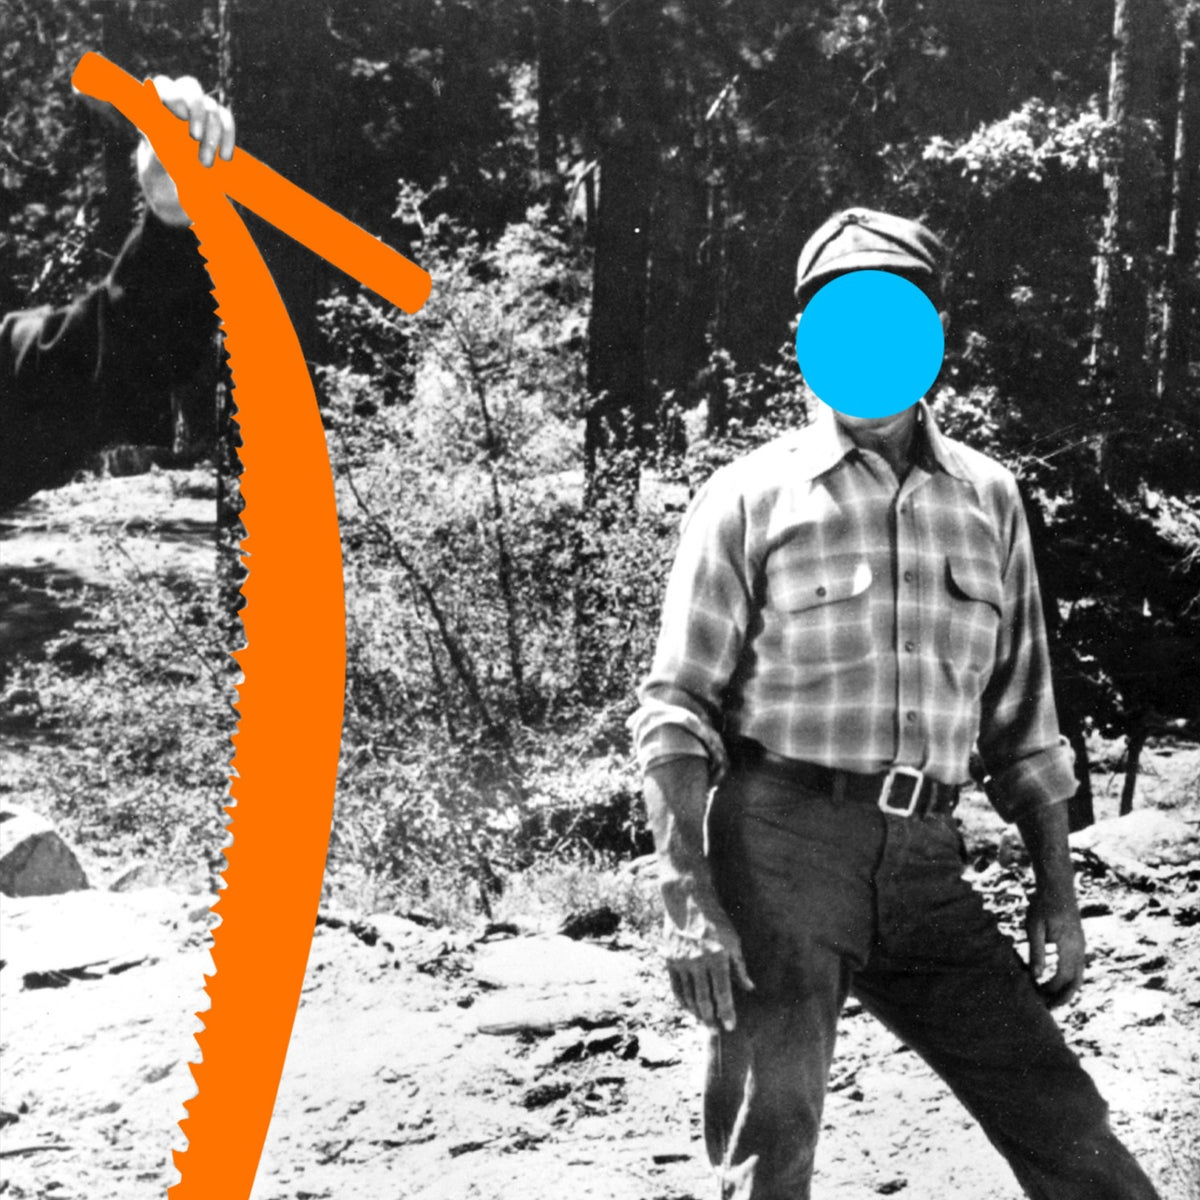 Two Person Saw (Orange): With Standing Person (Blue), 2004